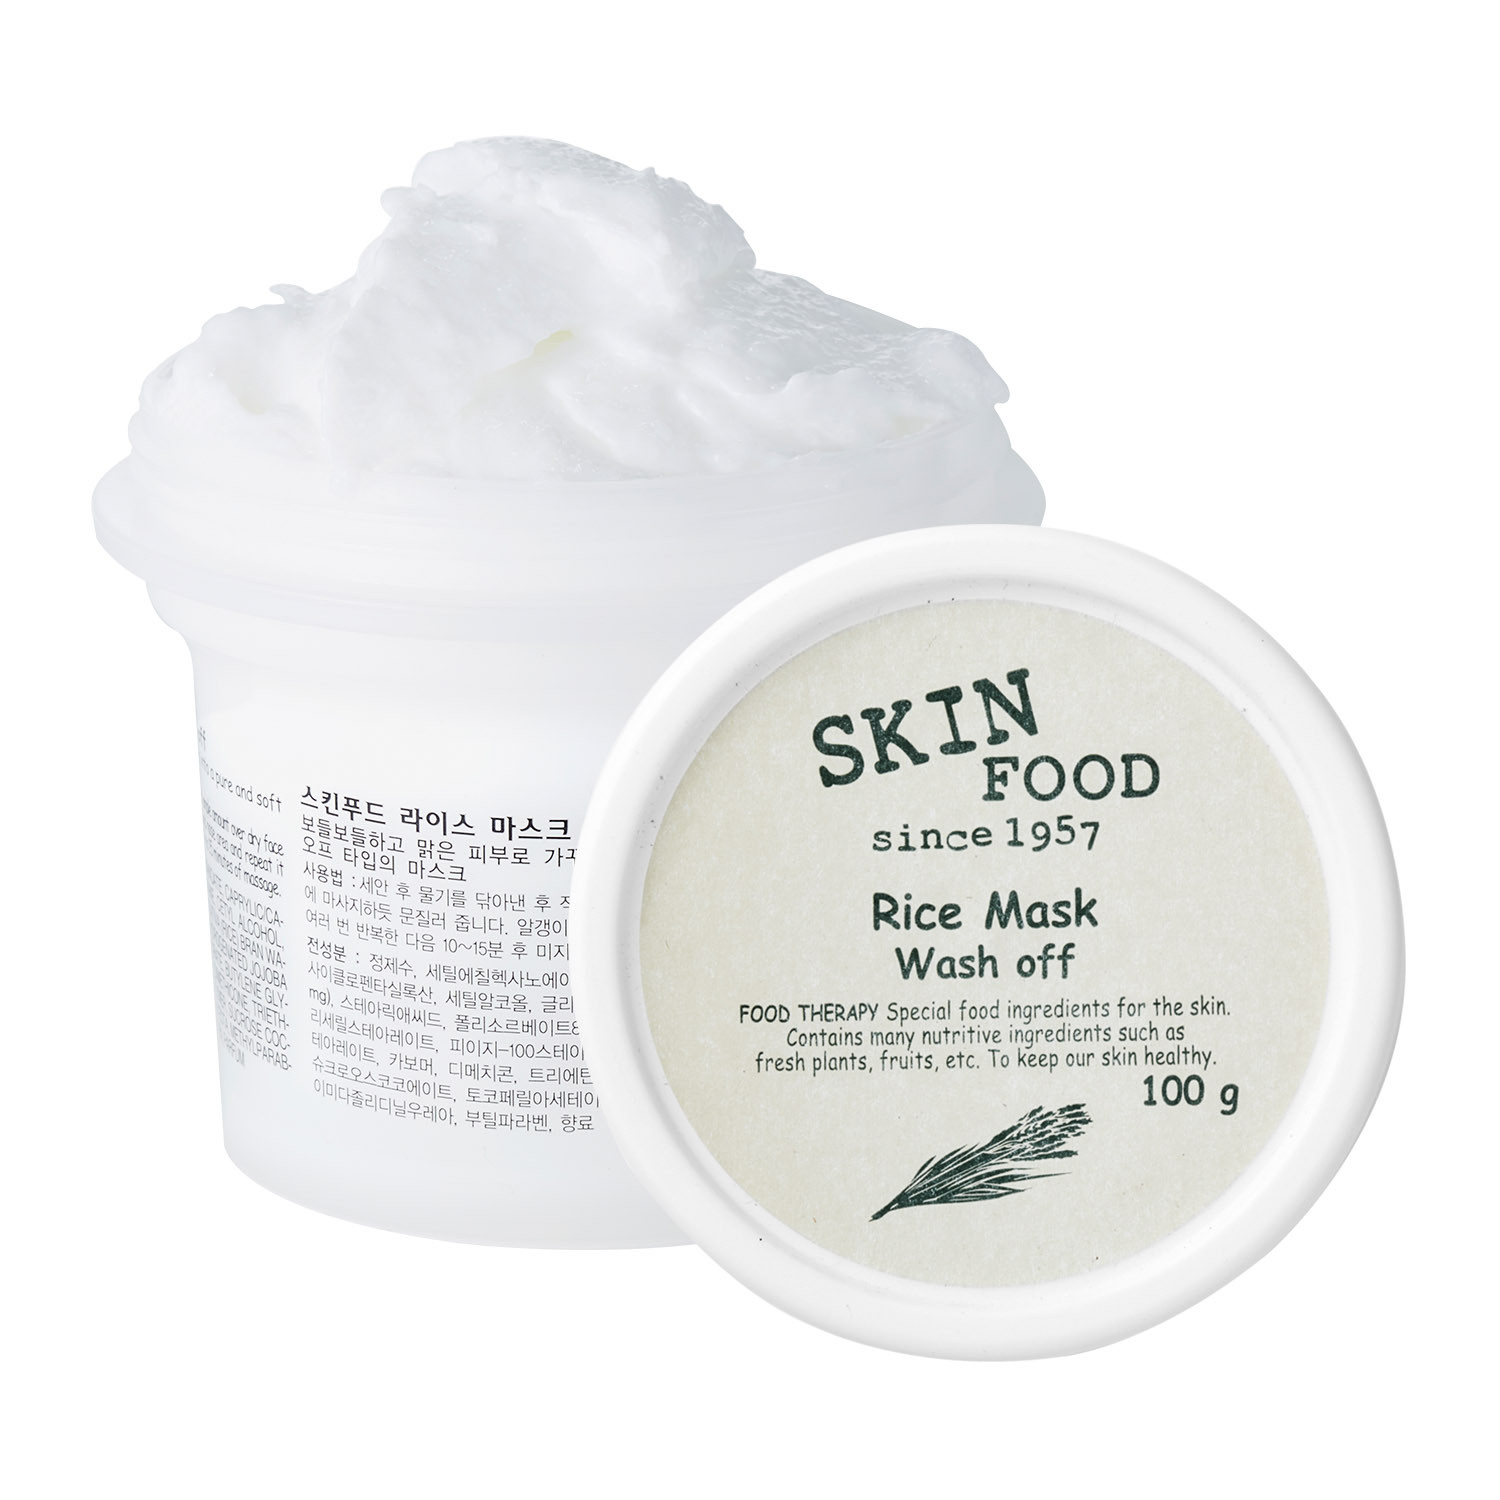 Skin Food Rice Mask Wash  - 100g